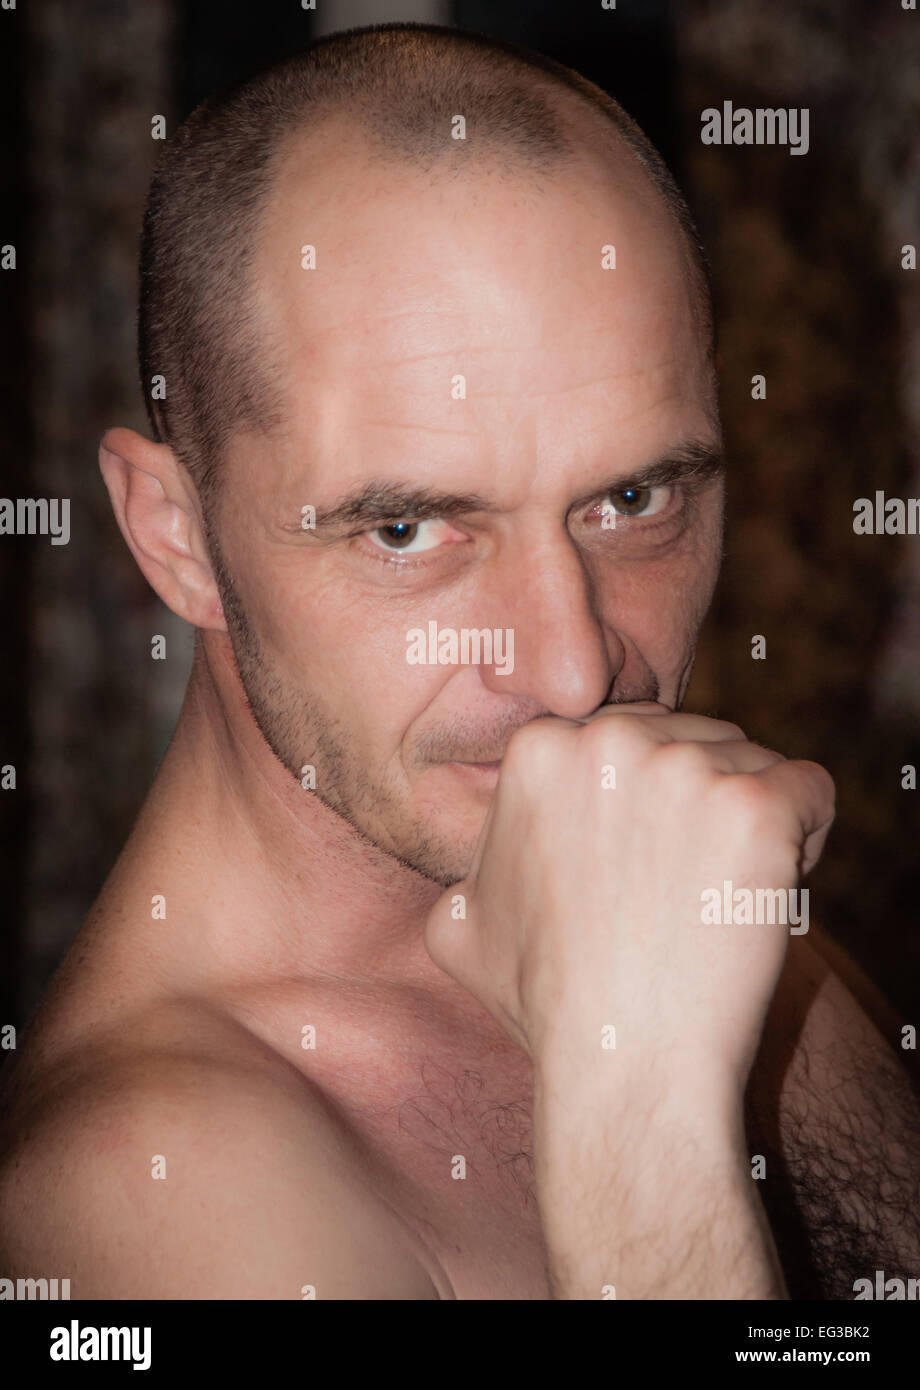 Portrait of an adult man, with a wise look - Stock Image